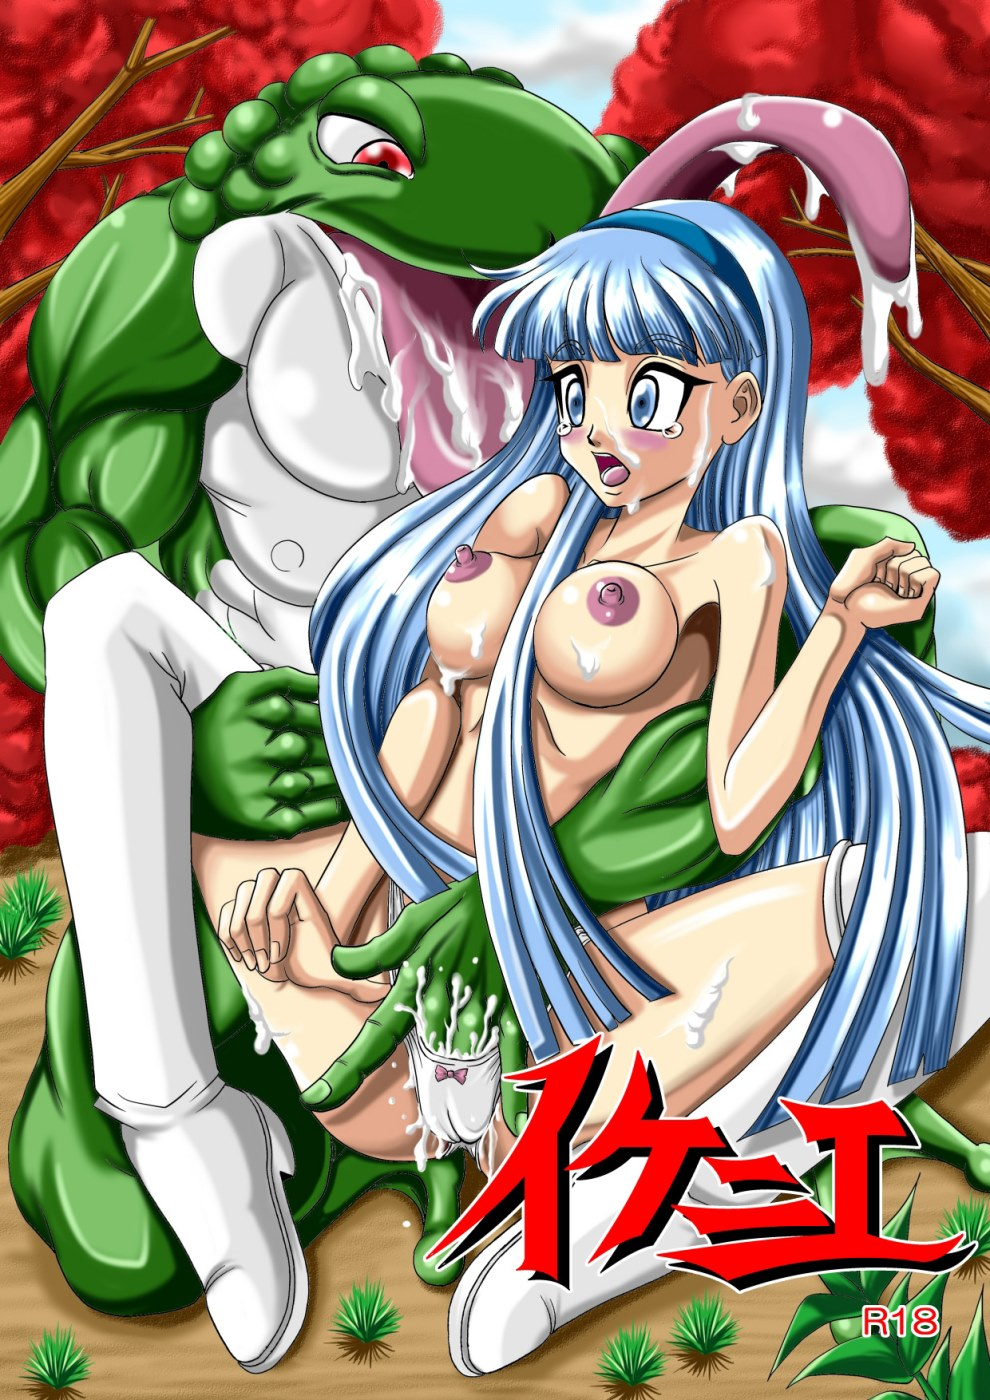 Ikenie- Sacrifice (Magic Knight Rayearth) porn comics 8 muses